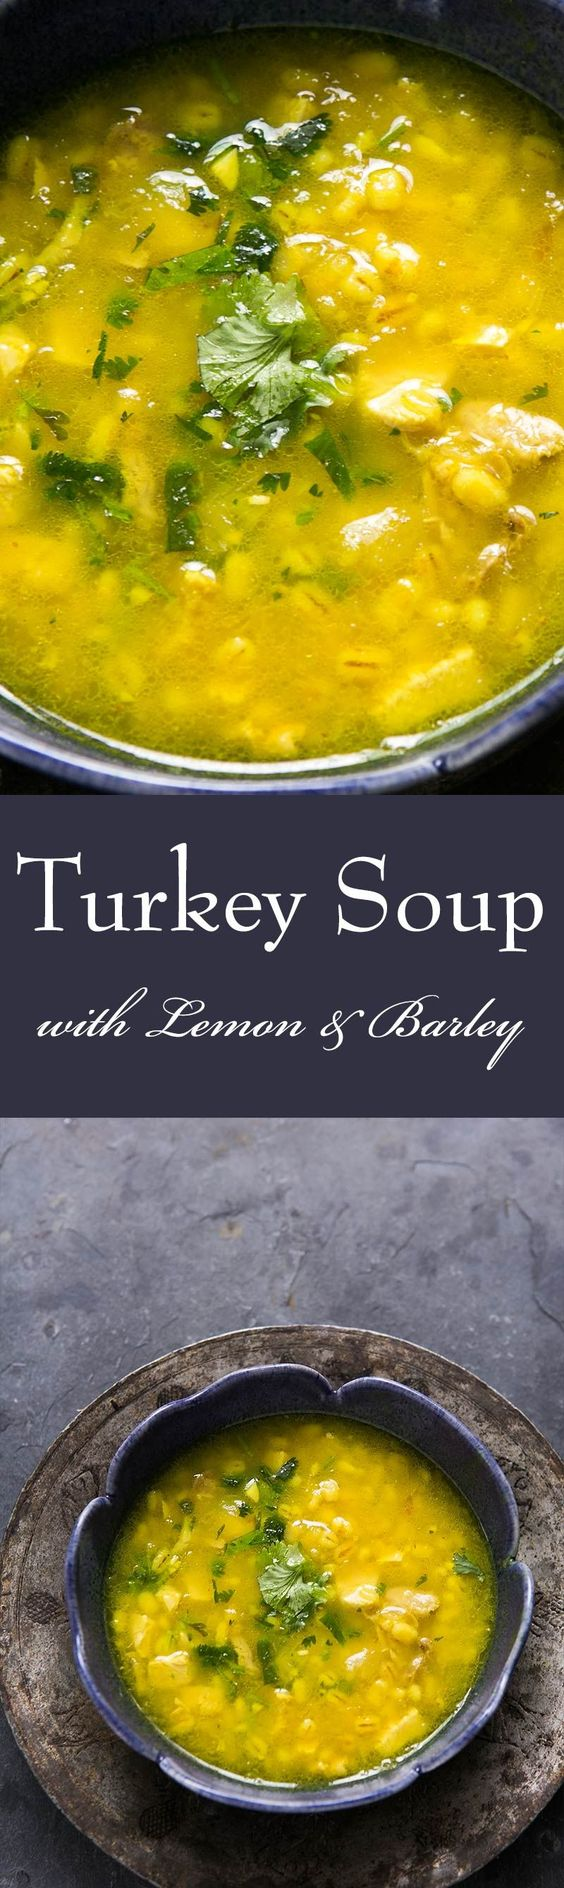 Turkey Soup With Lemon And Barley Recipe — Dishmaps